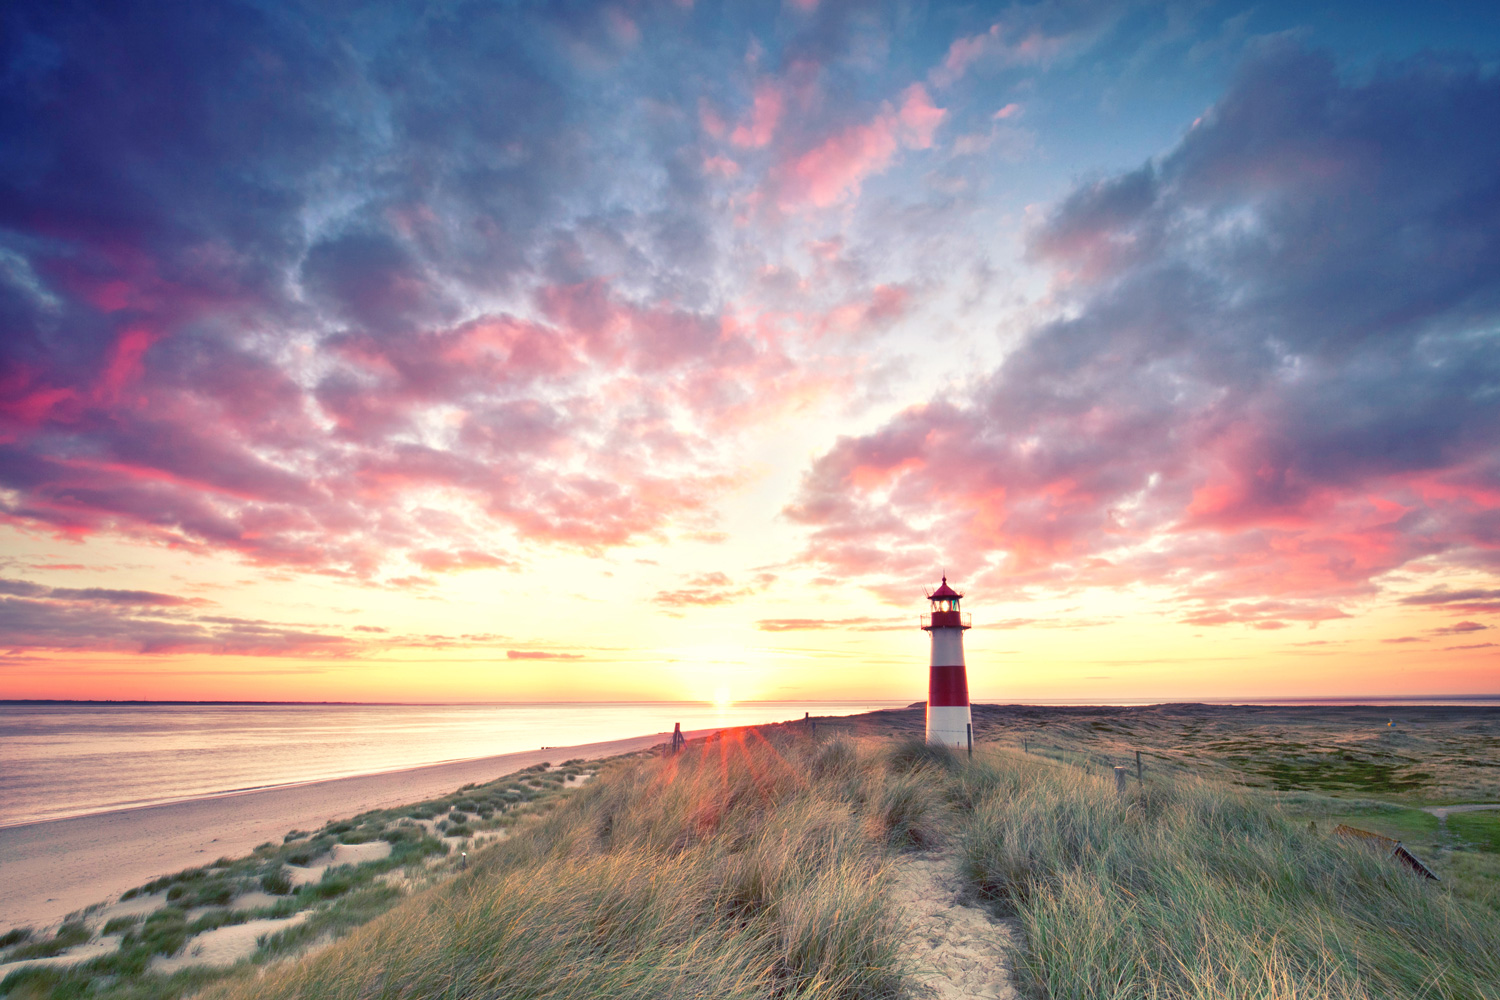 Sunrise at Lighthouse List East on Sylt